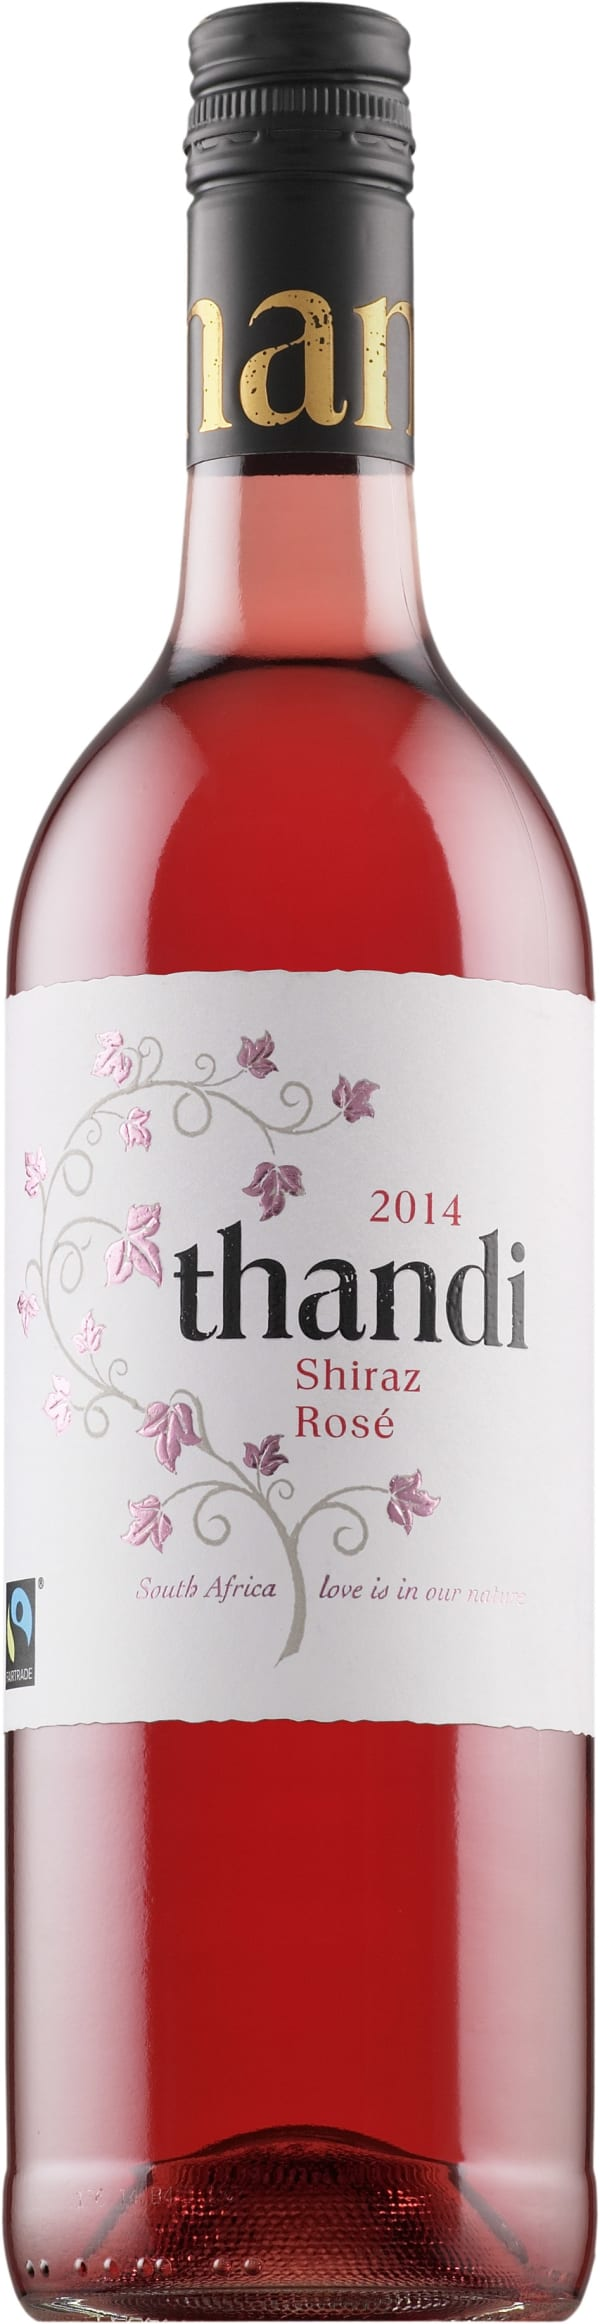 Thandi Shiraz Rosé 2016